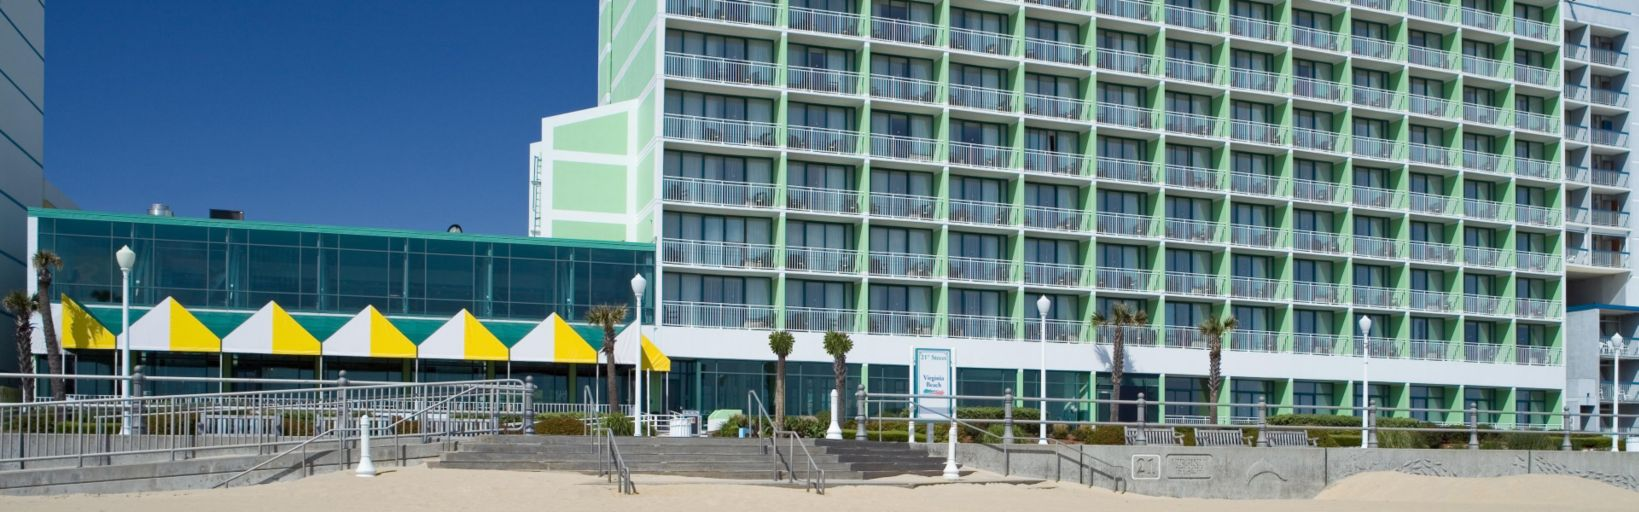 Holiday Inn Va Beach Oceanside 21st St Hotel Reviews Photos